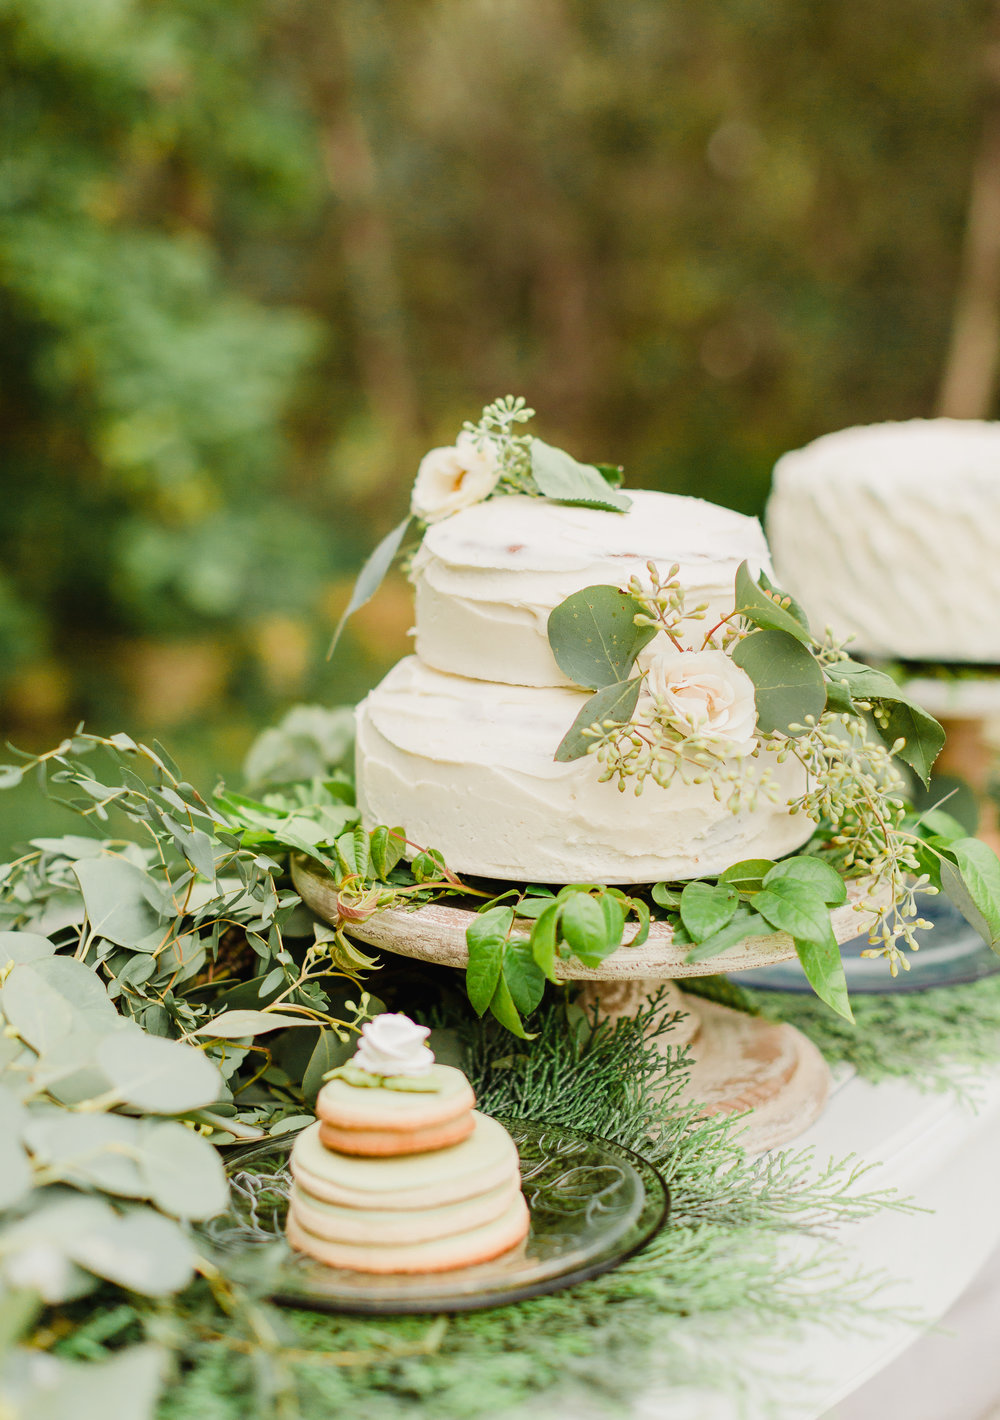 RUSTIC CAKE STAND - $10.00